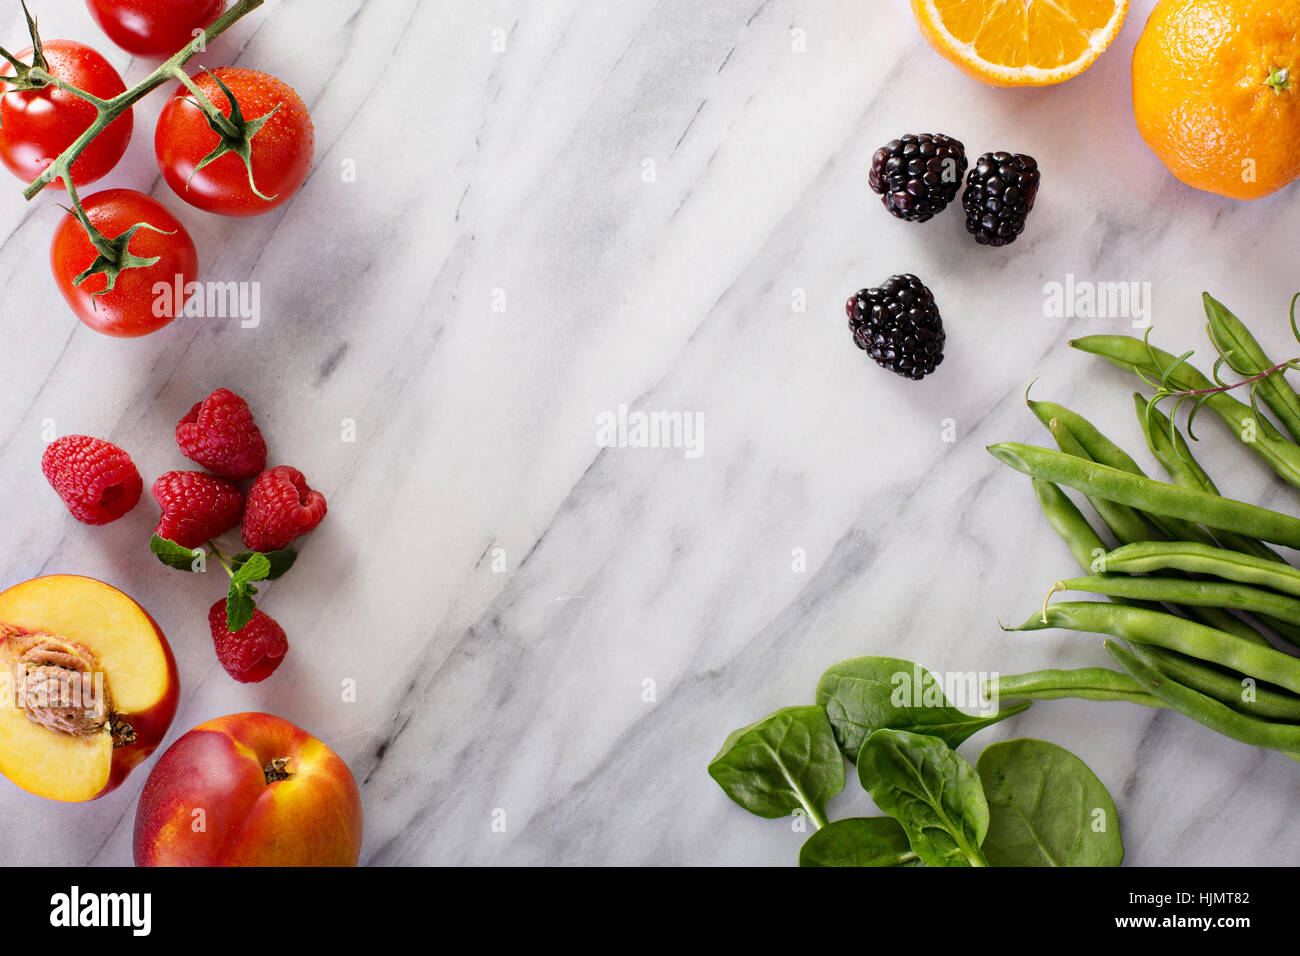 Fruit and vegetable ingredients - Stock Image